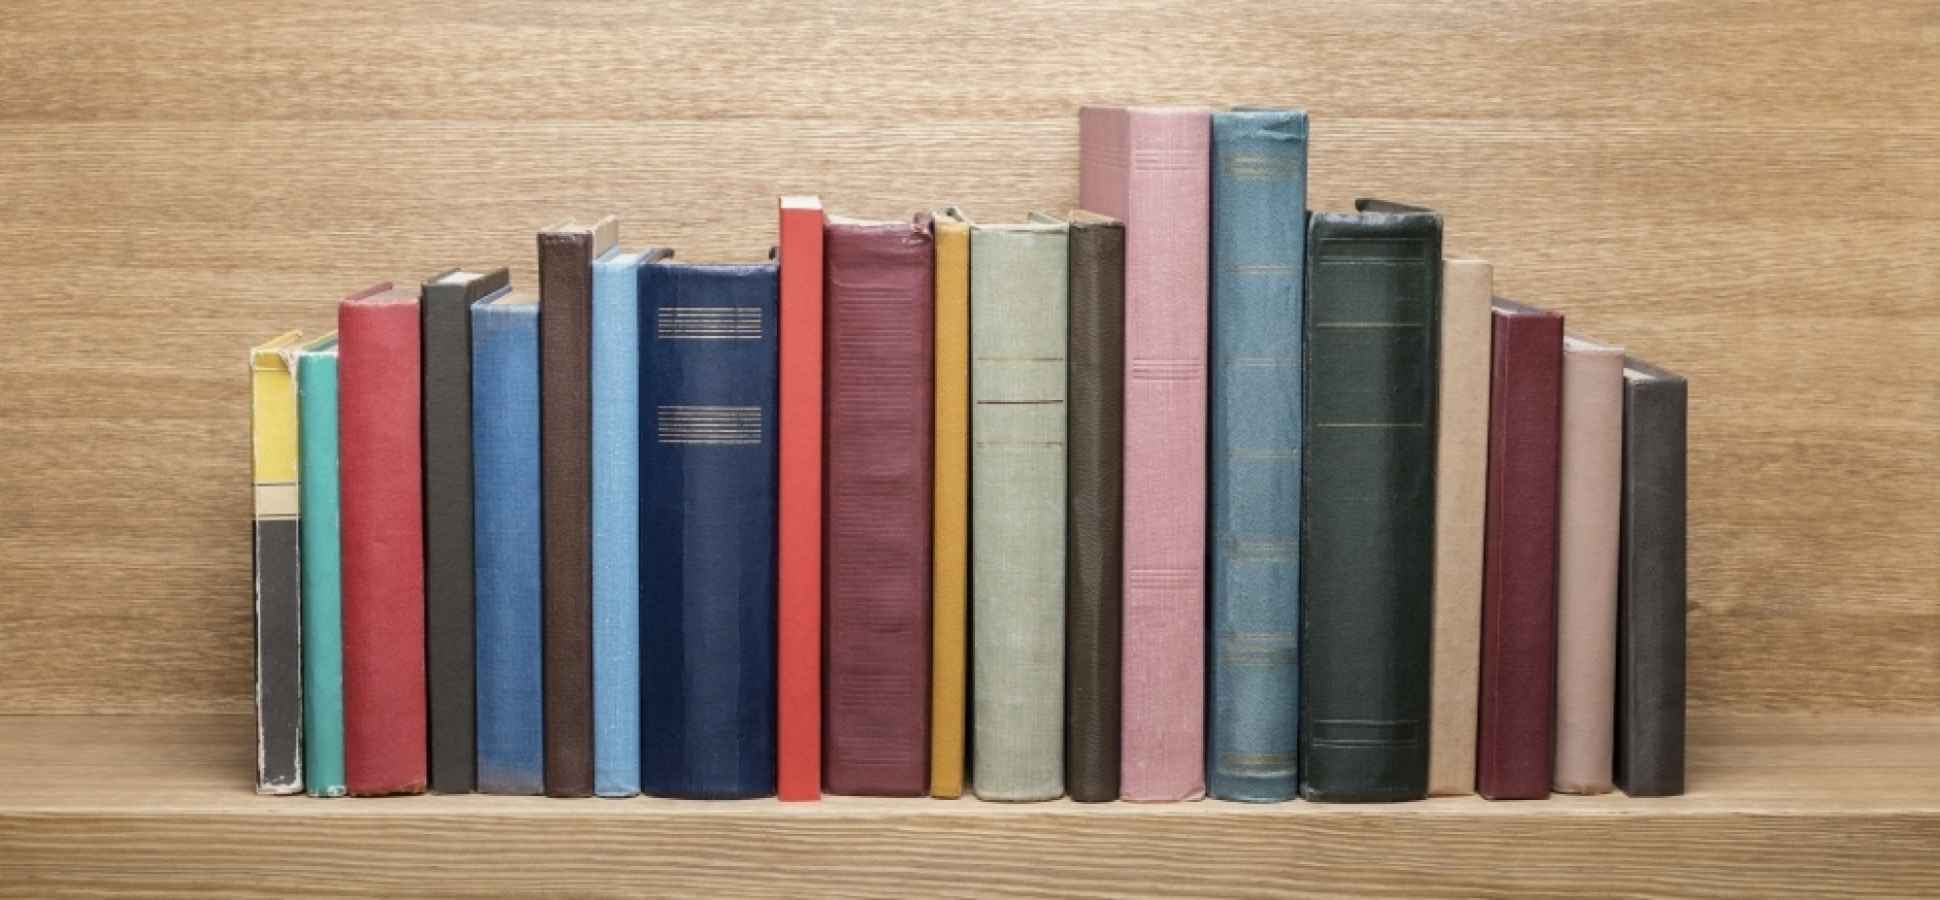 How to Get More Value Out of the Books You Read